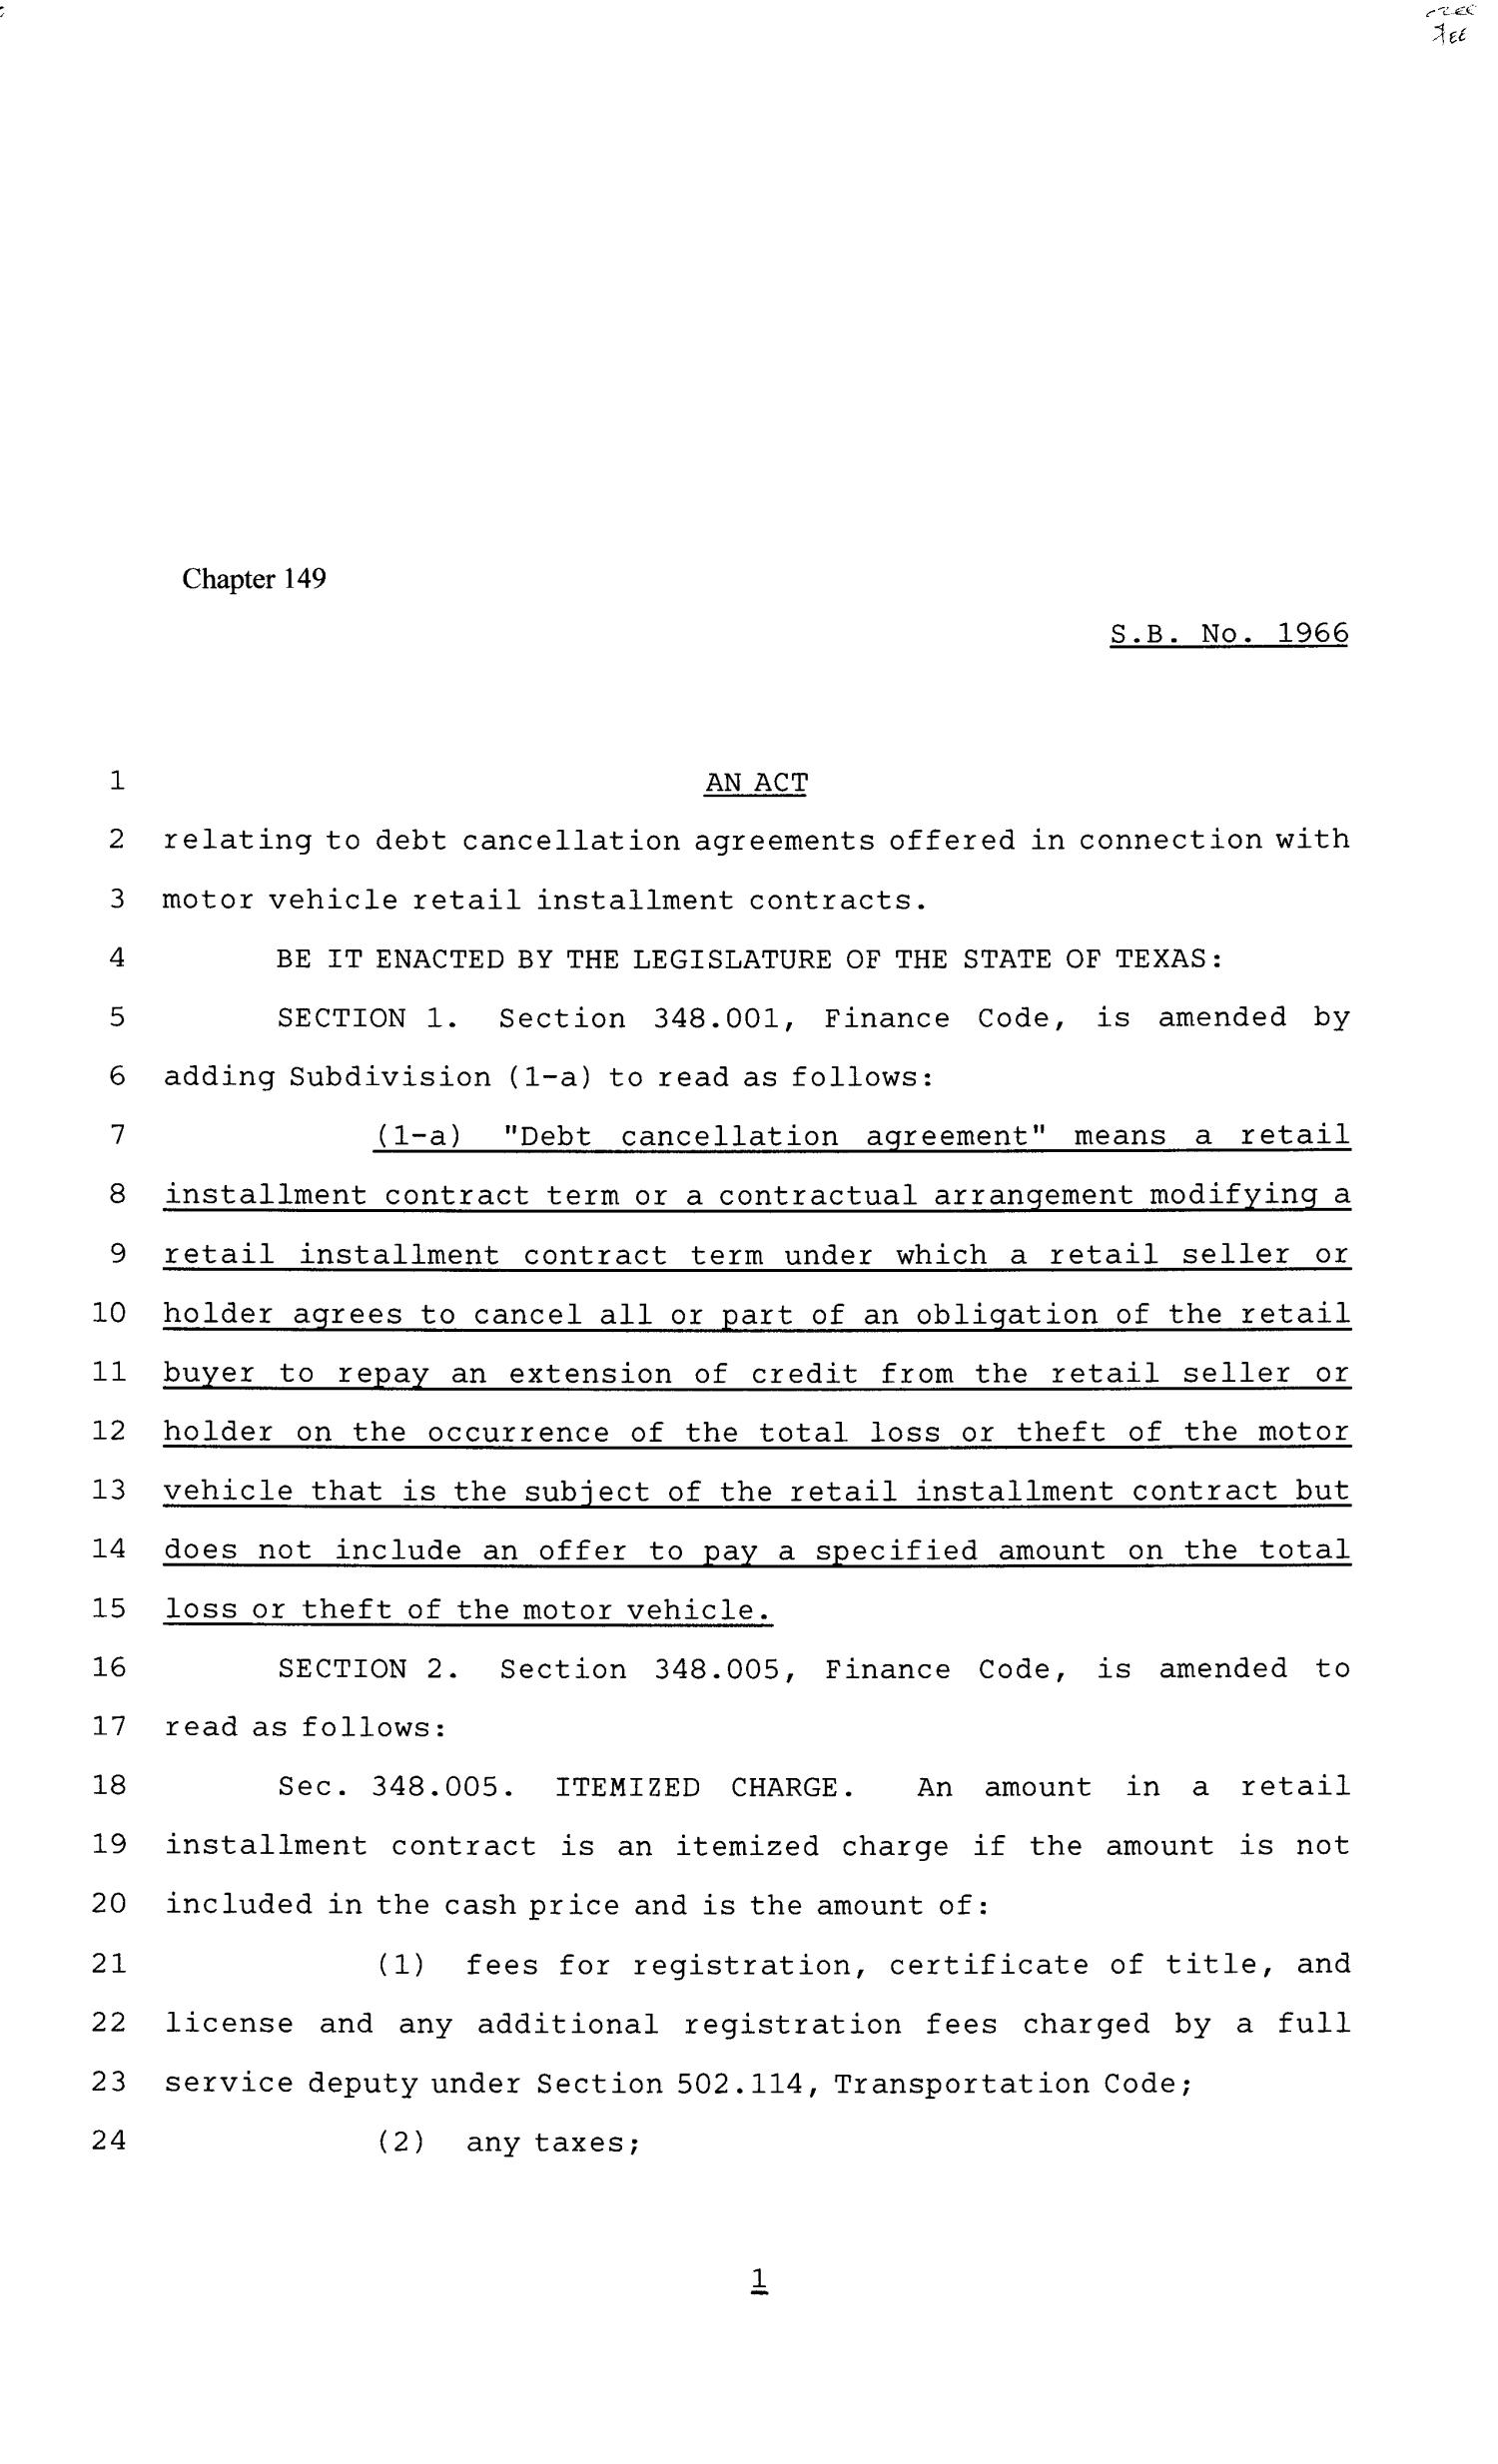 81st Texas Legislature, Senate Bill 1966, Chapter 149                                                                                                      [Sequence #]: 1 of 4